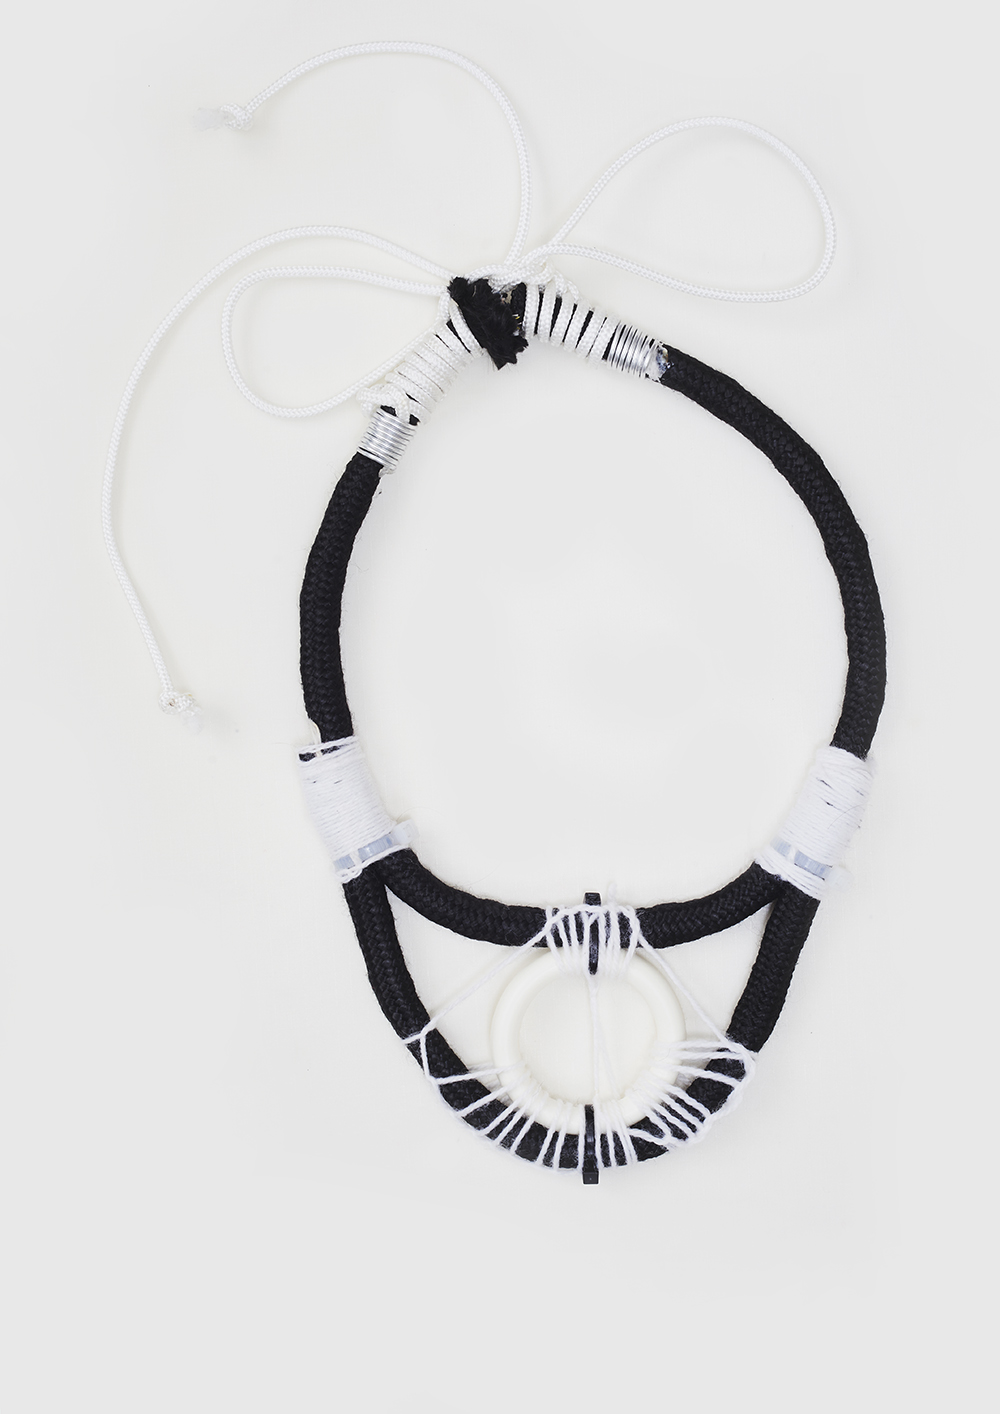 Blackoutlabel necklaces summerly 424